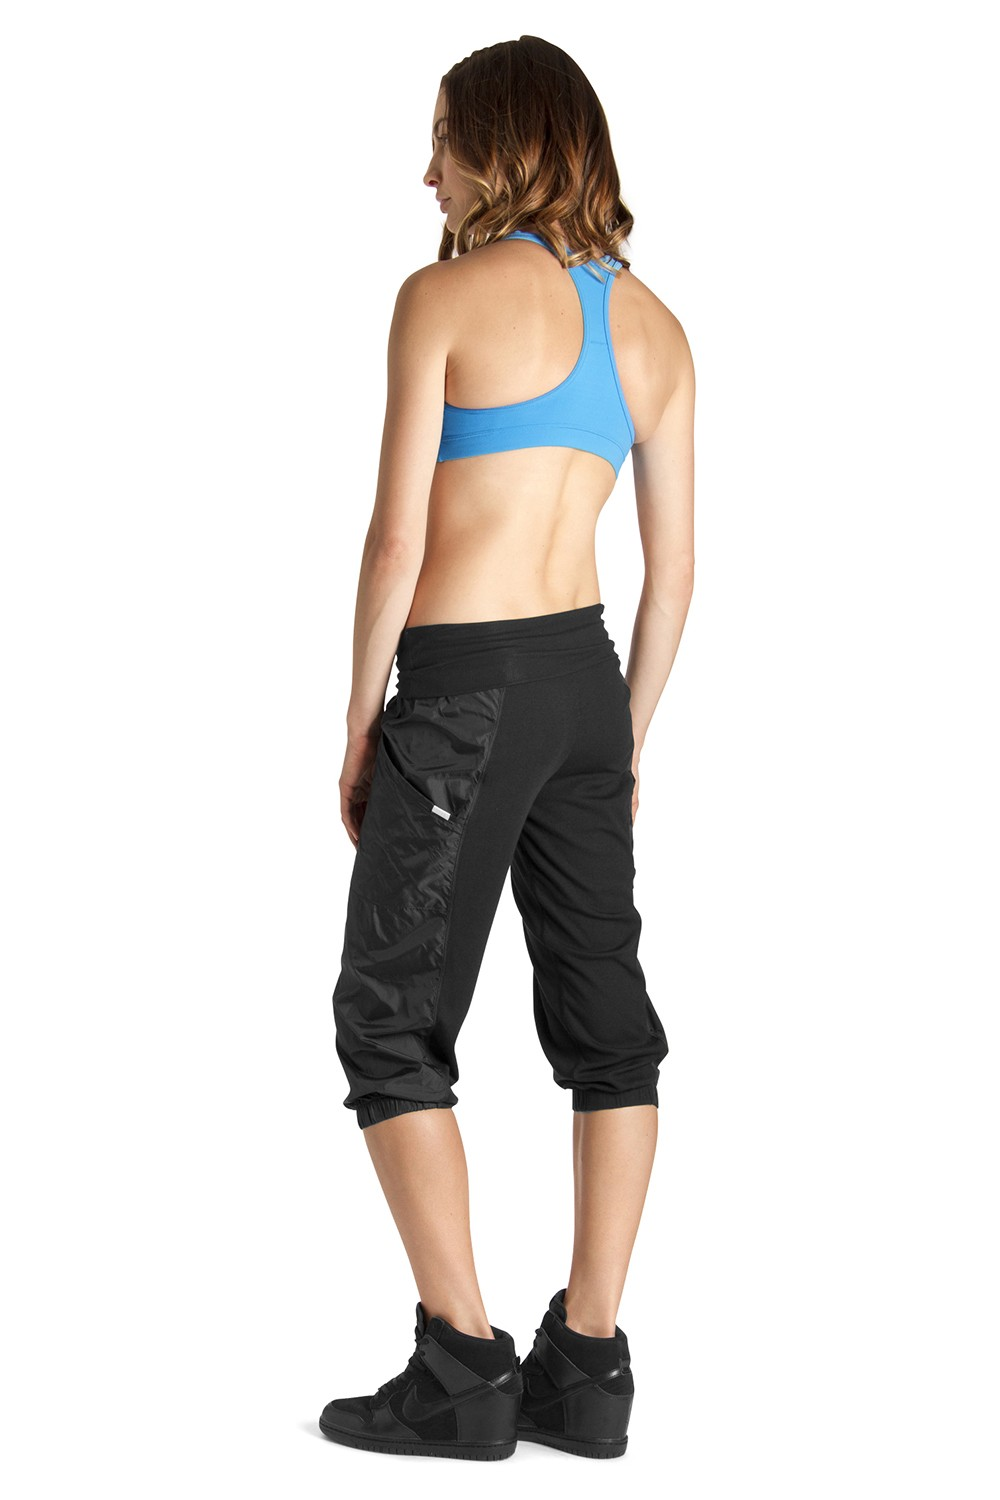 Women's Dance Pants